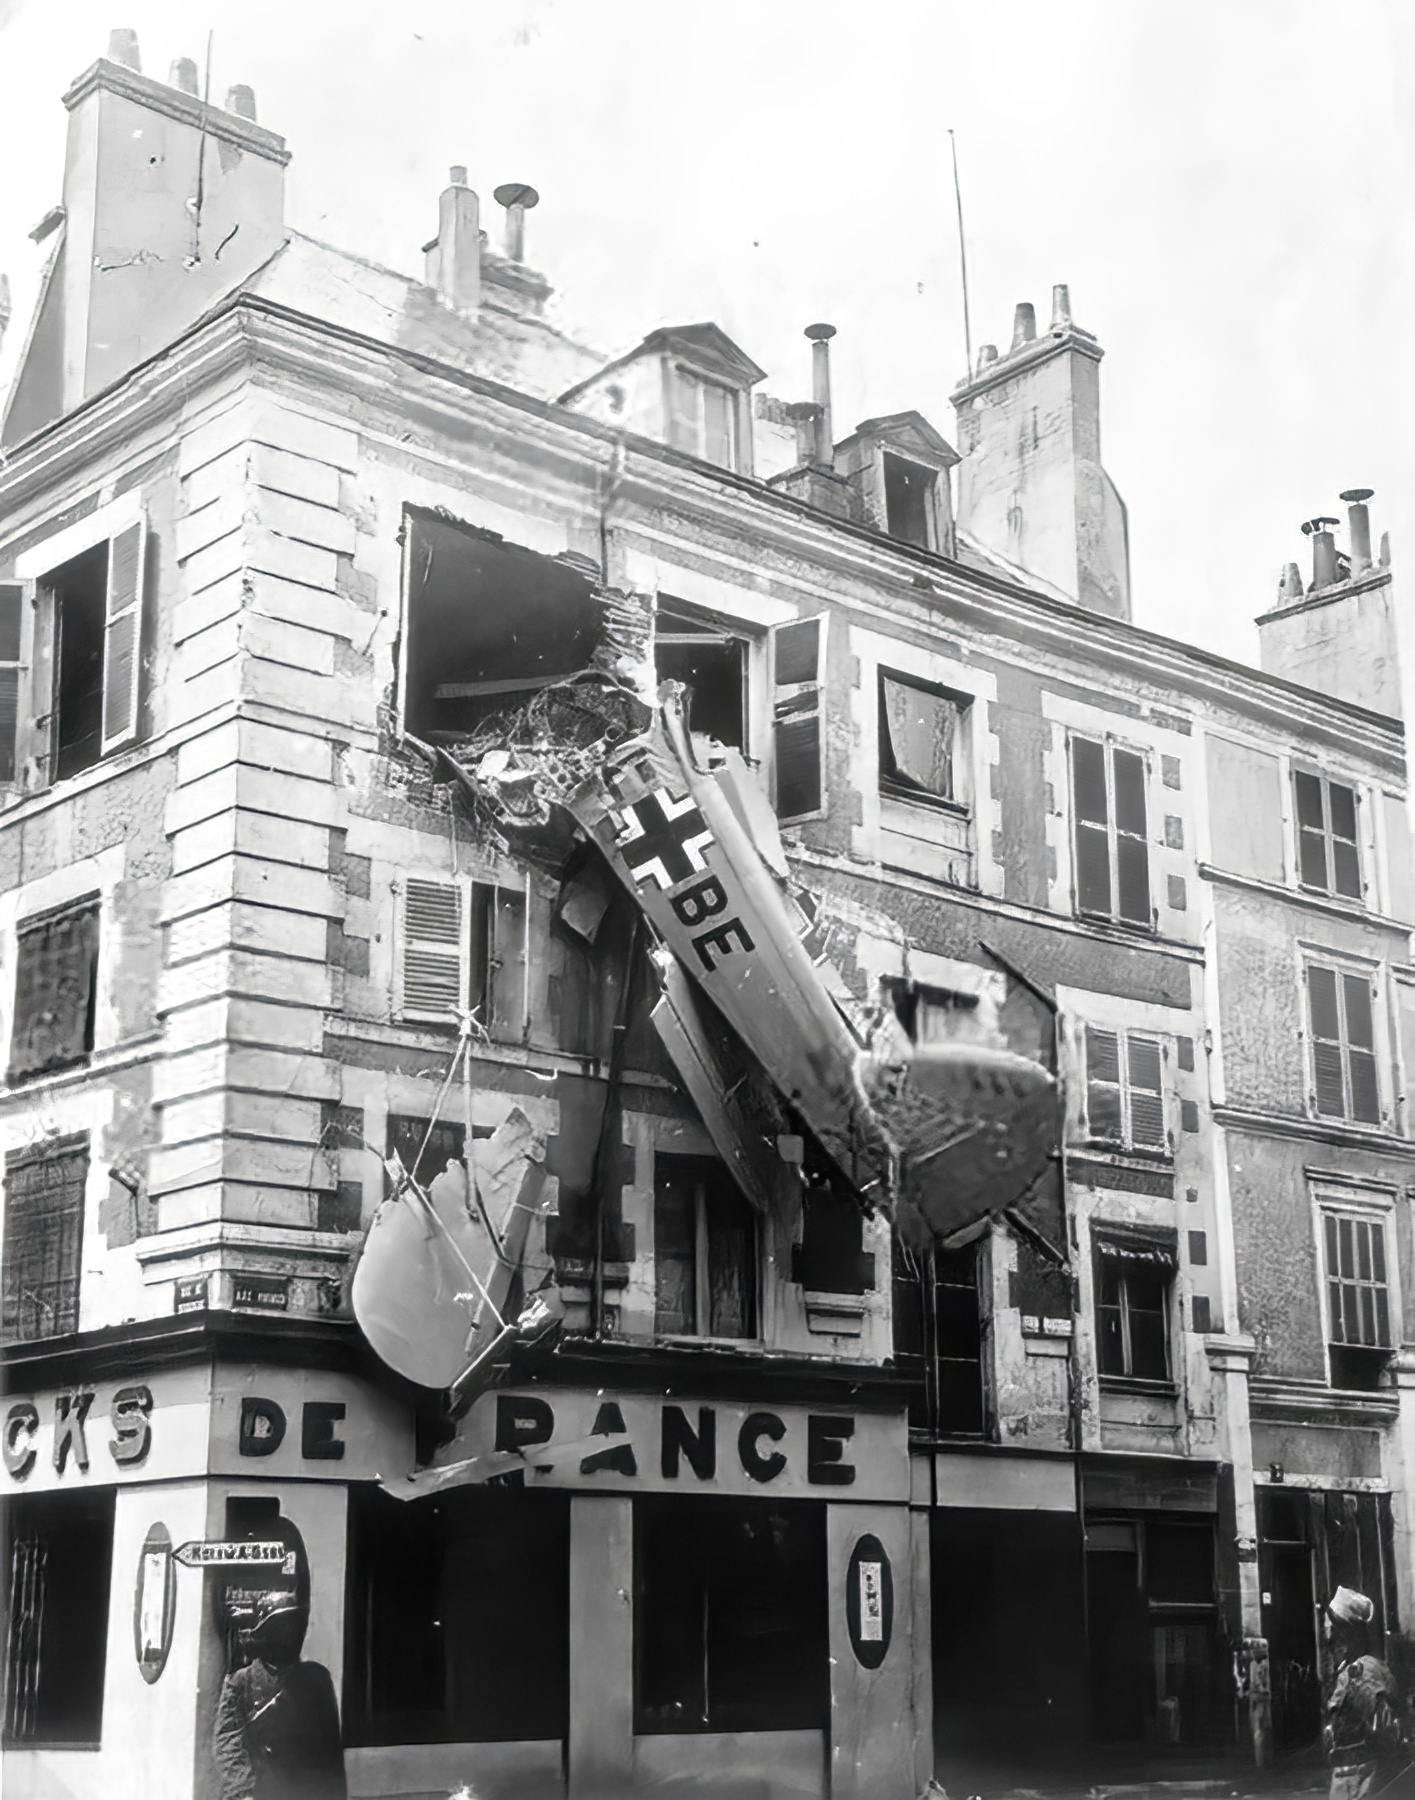 Luftwaffe reconnaissance aircraft crashsite being guarded by German soldiers in Paris France 1940 01